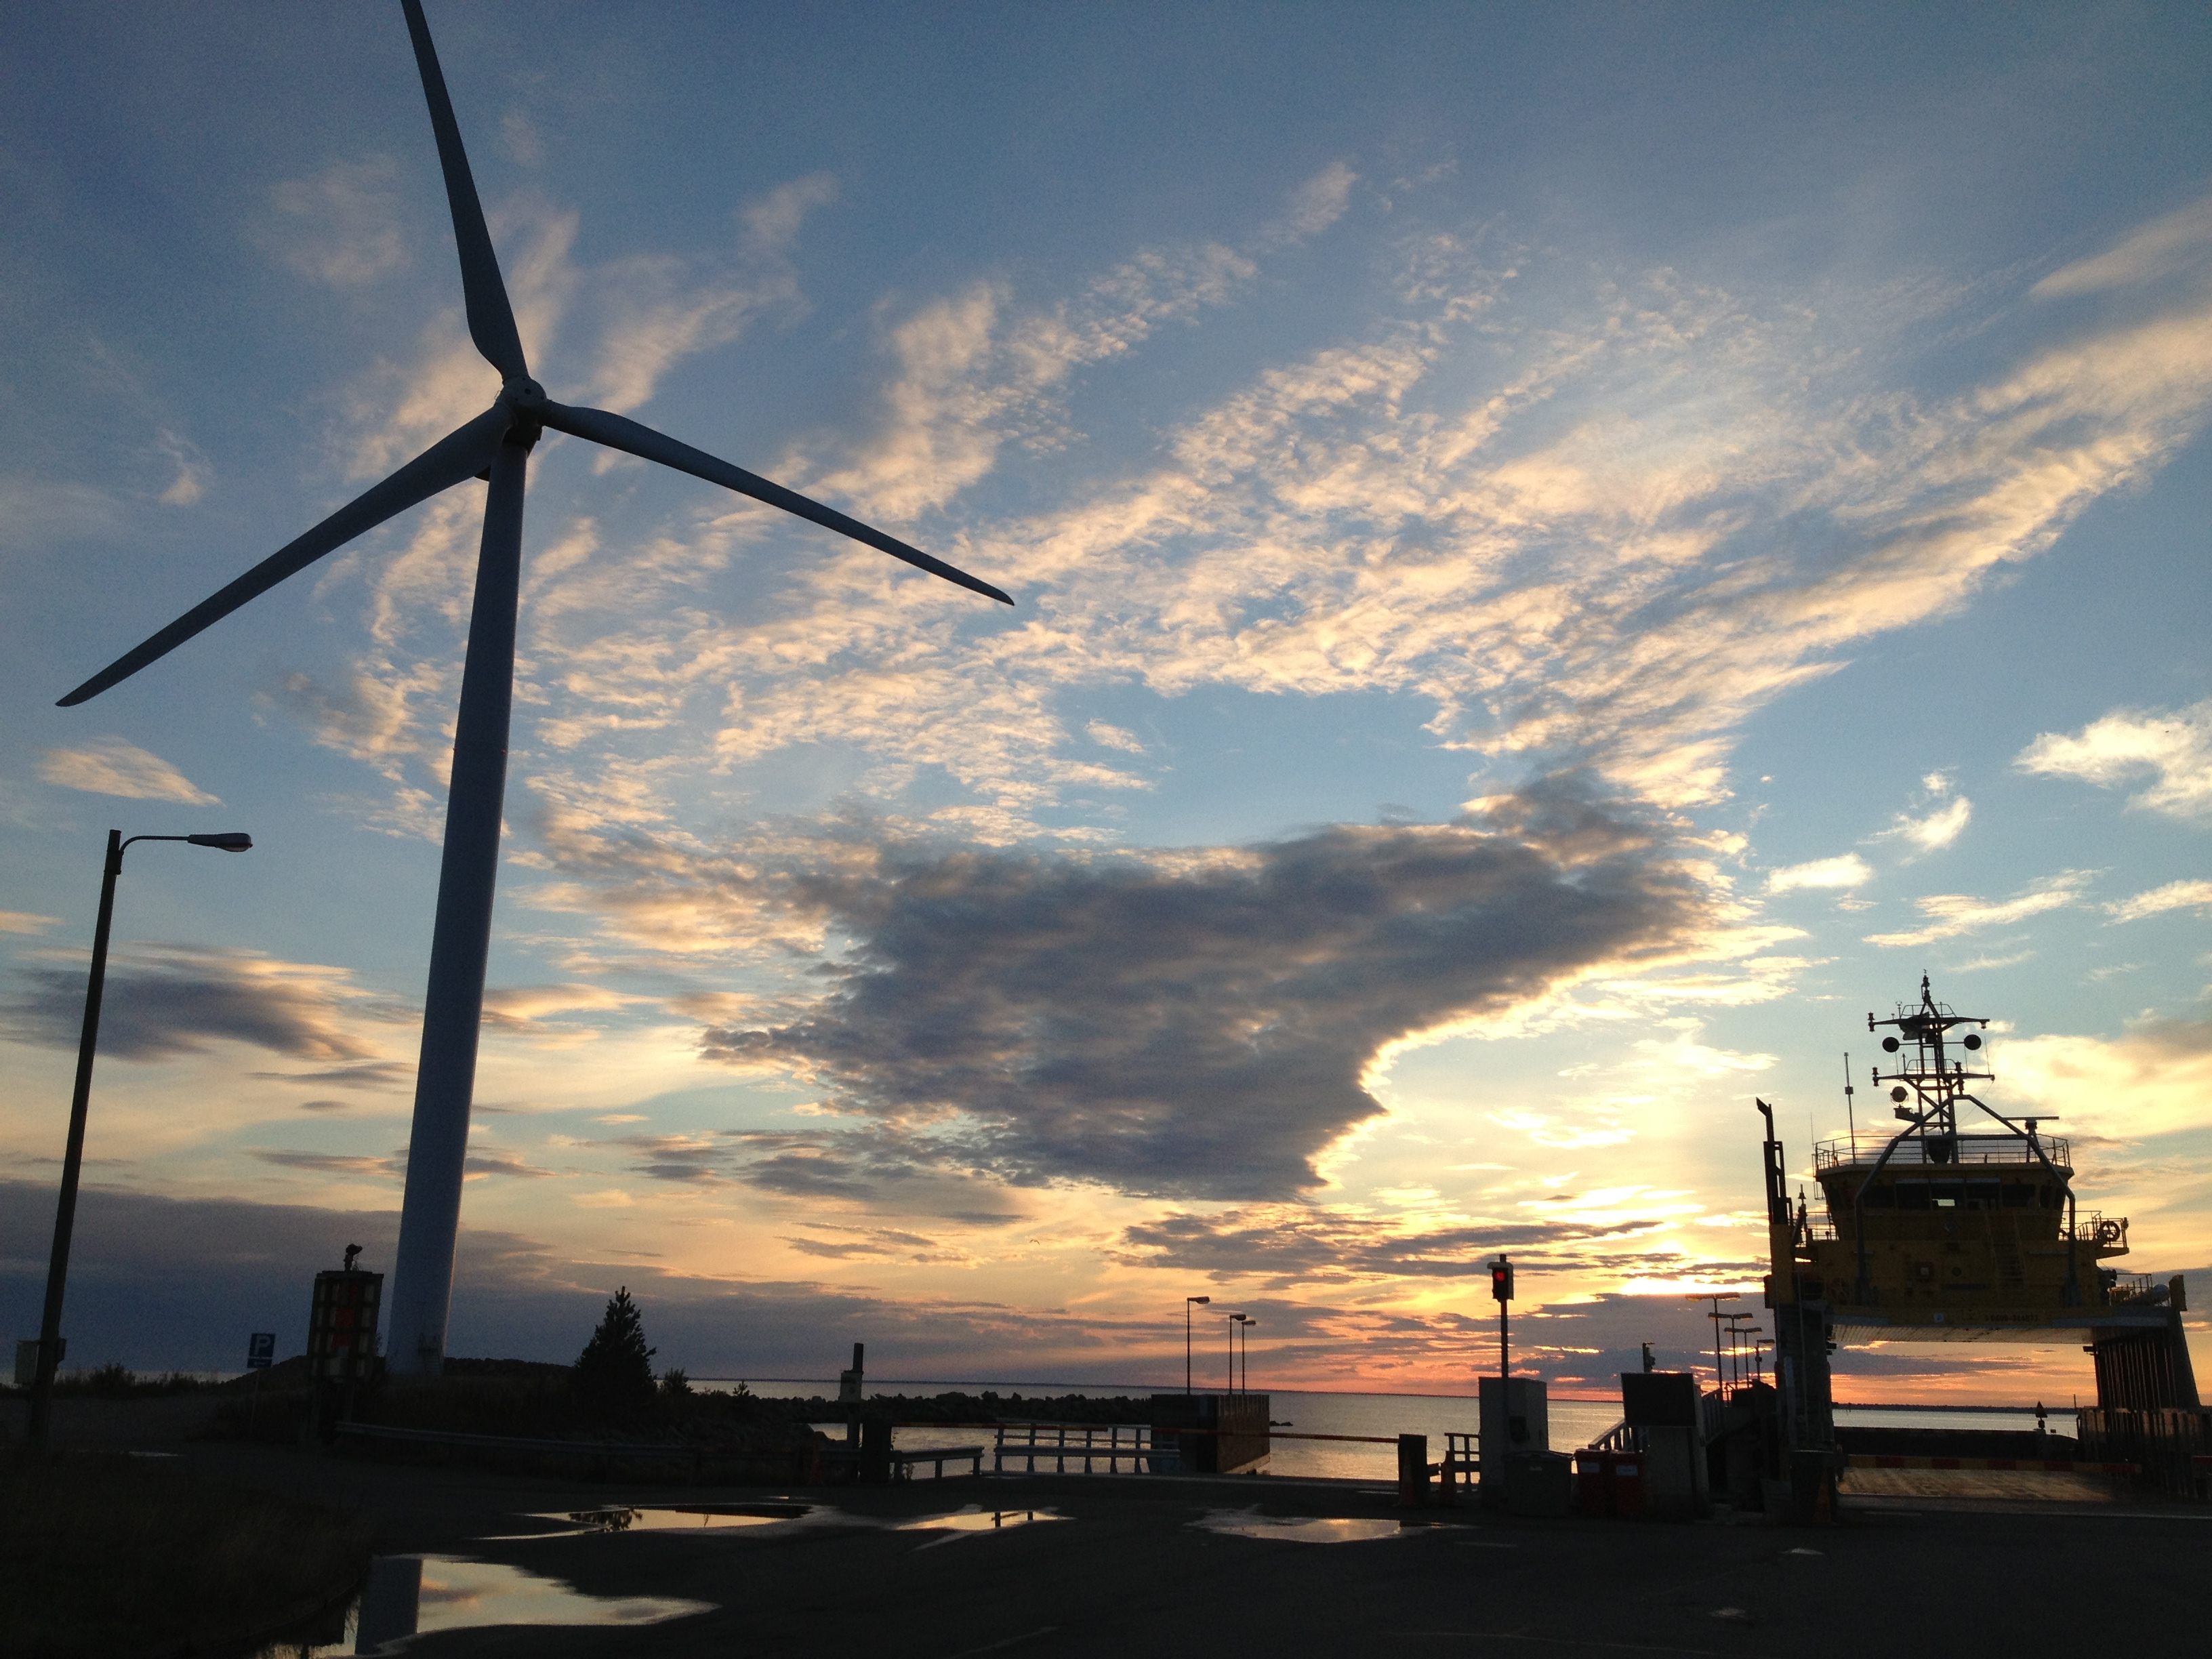 Ferry port and sunset. There are wind mils at the port.